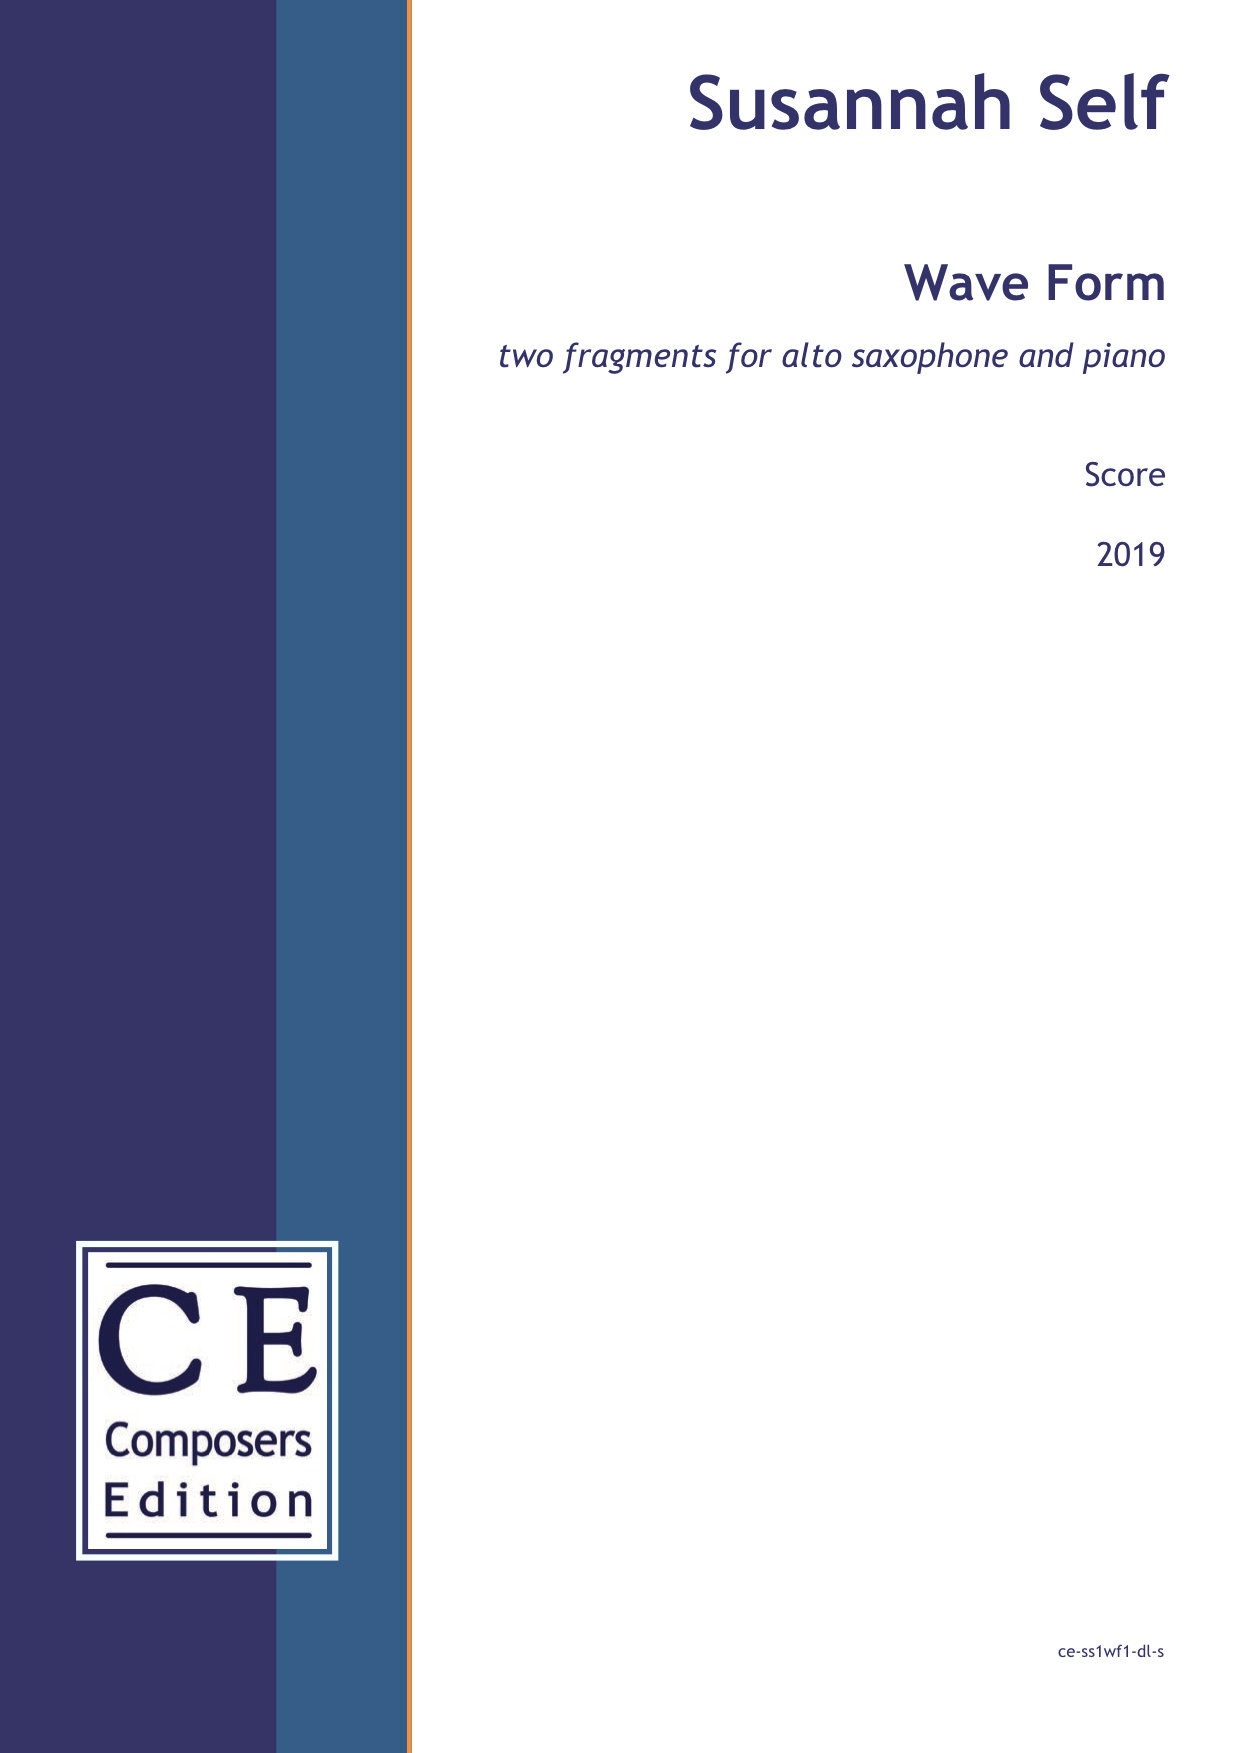 Susannah Self: Wave Form two fragments for alto saxophone and piano